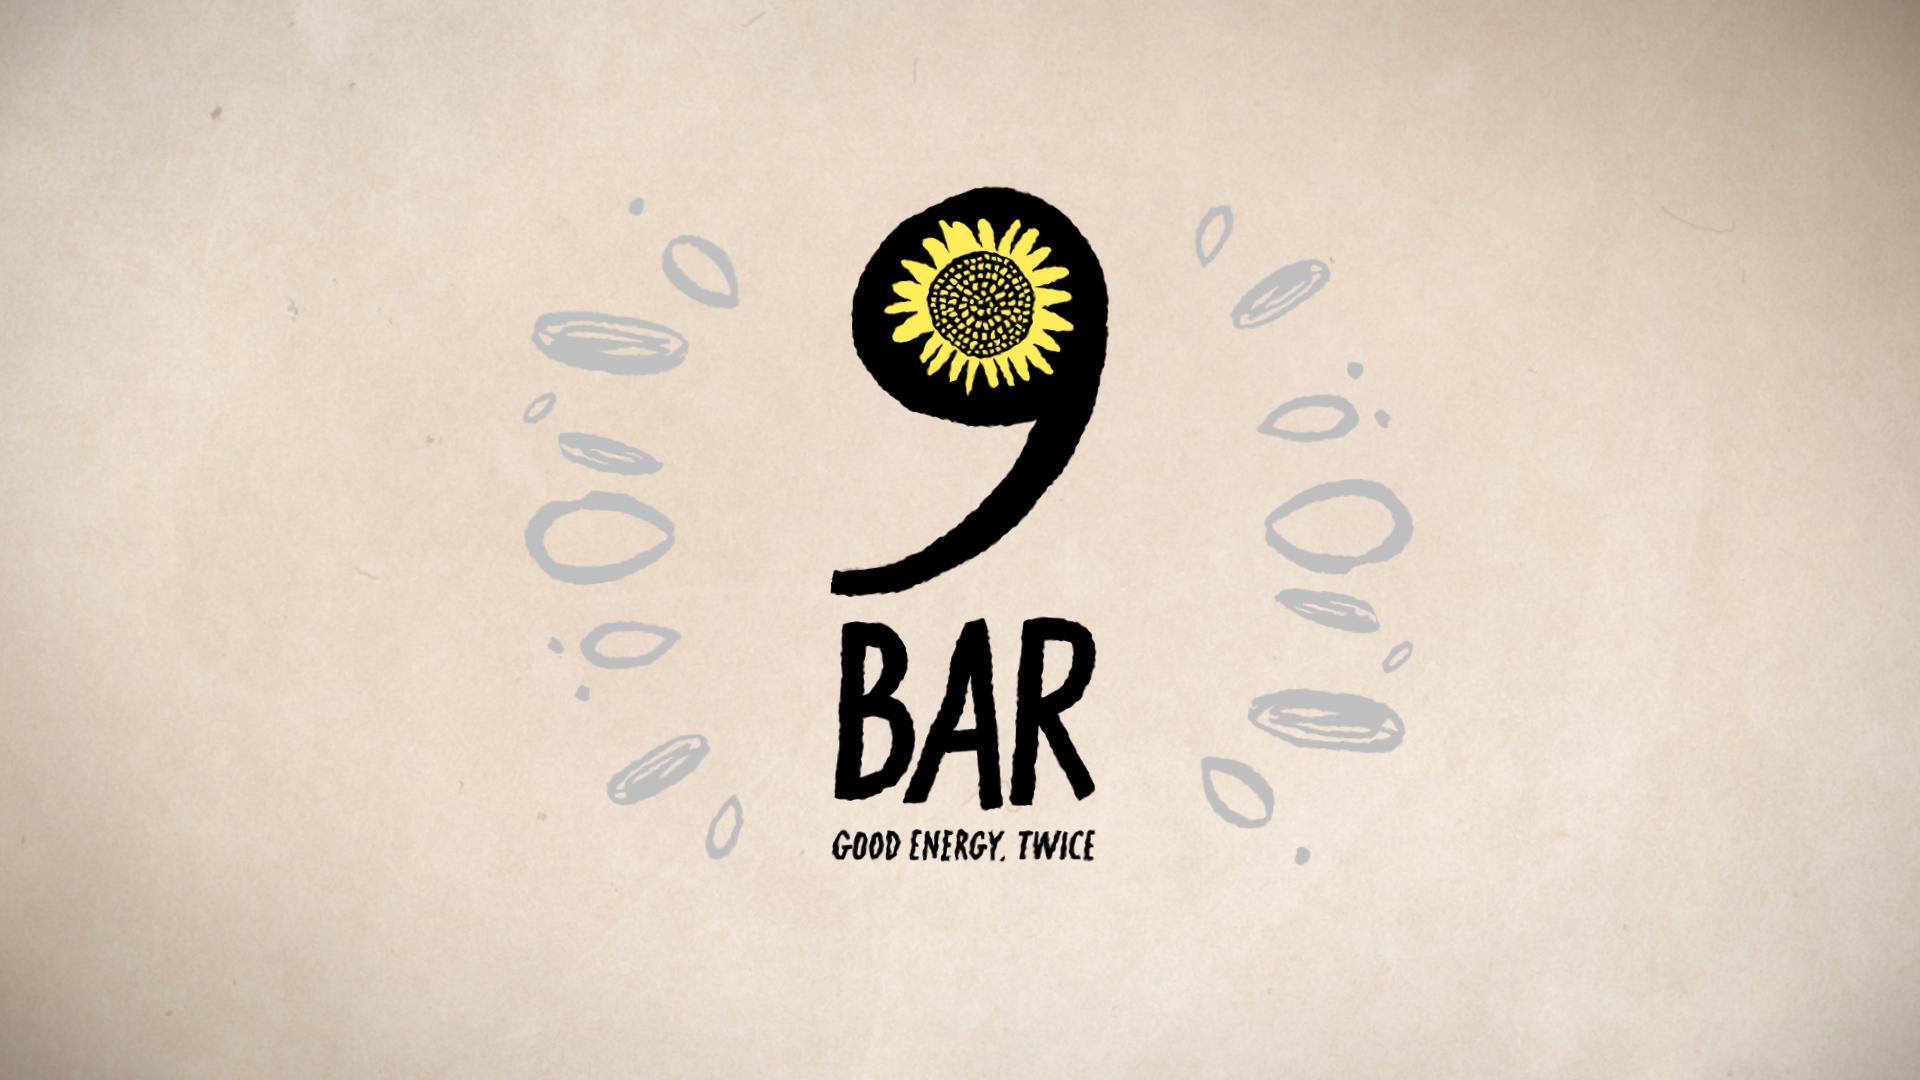 Animated logo 9Bar